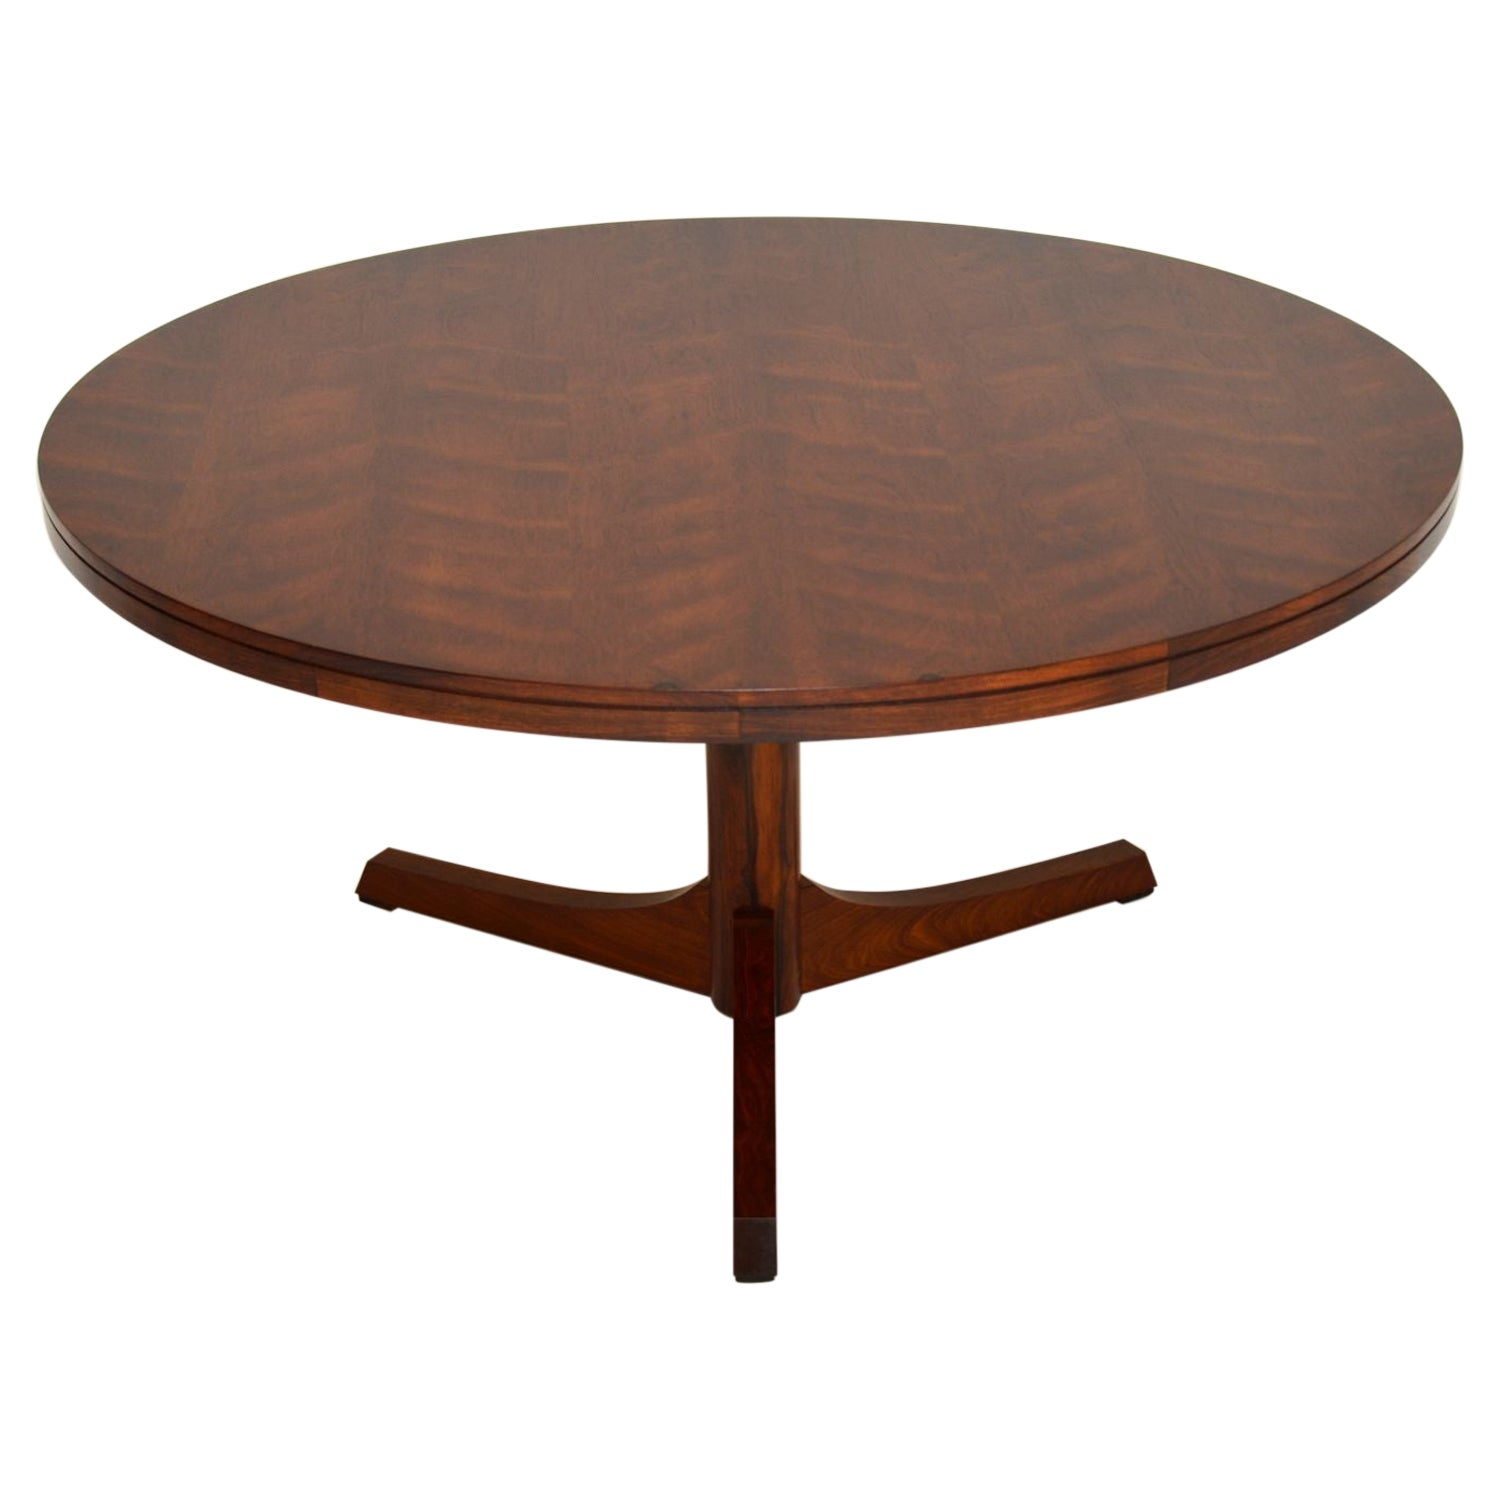 Dining Table by Robert Heritage for Archie Shine Vintage, 1960's